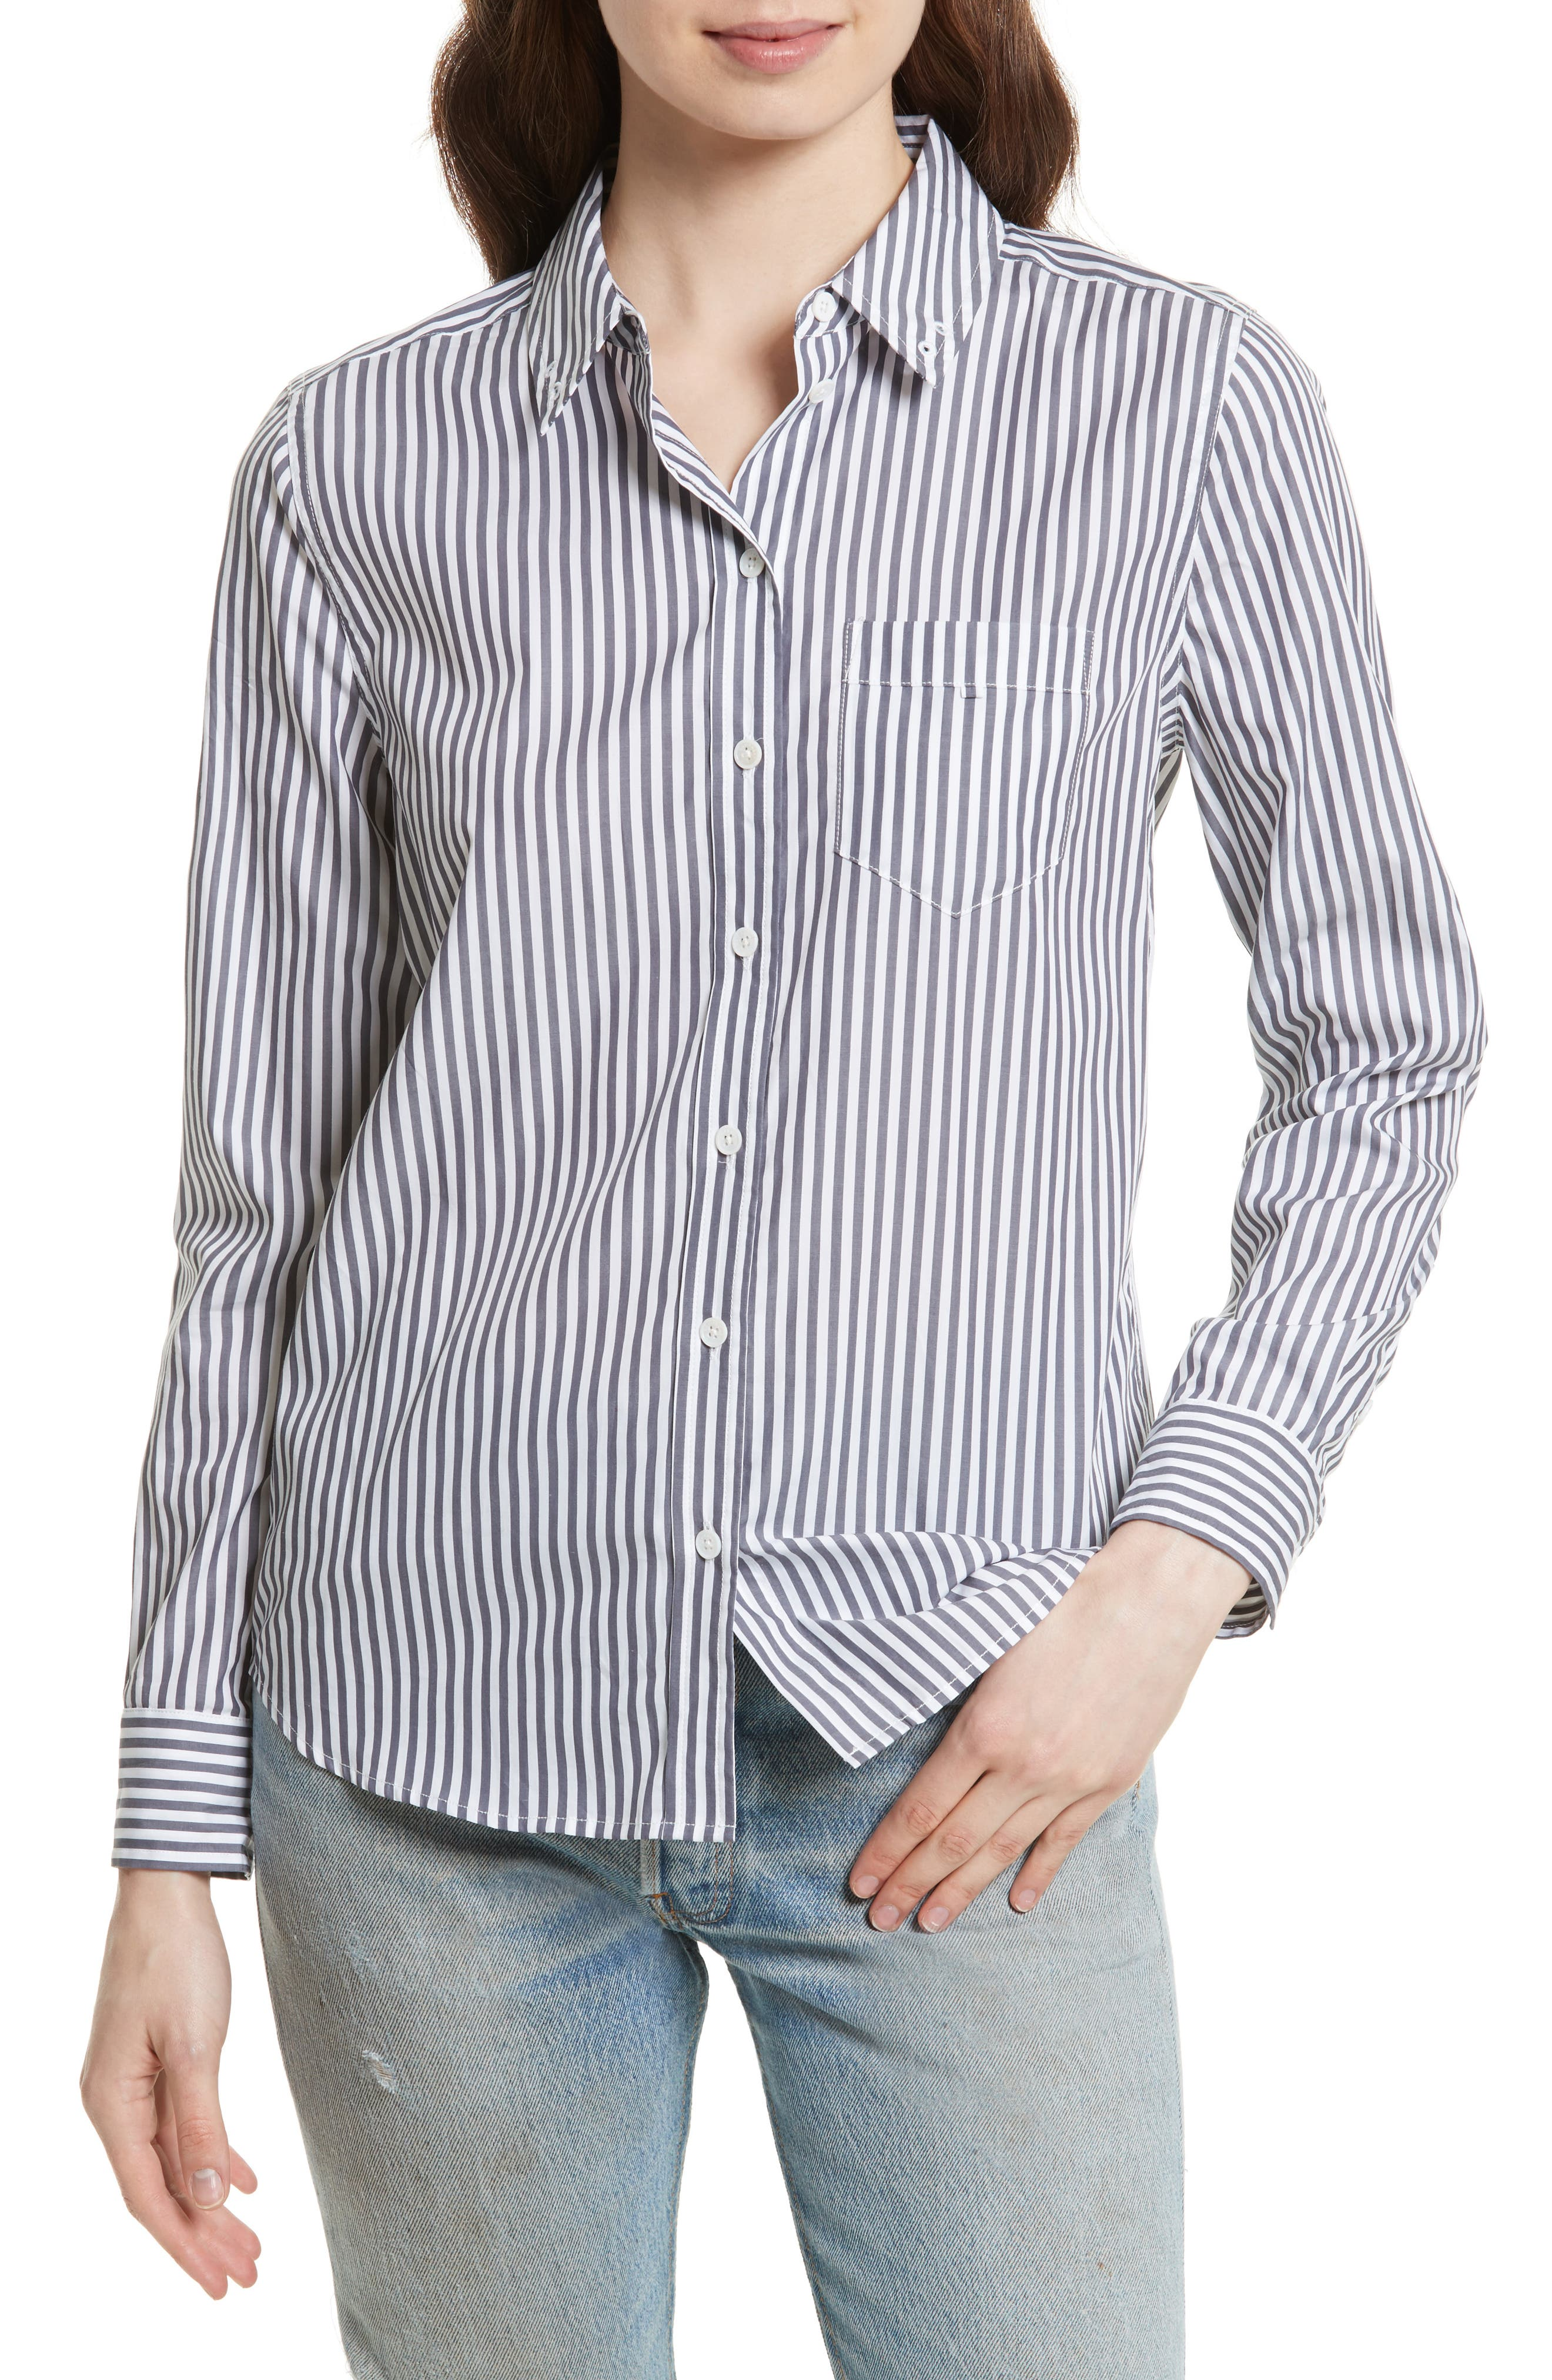 Main Image - Equipment Brett Embroidered Stripe Cotton Shirt